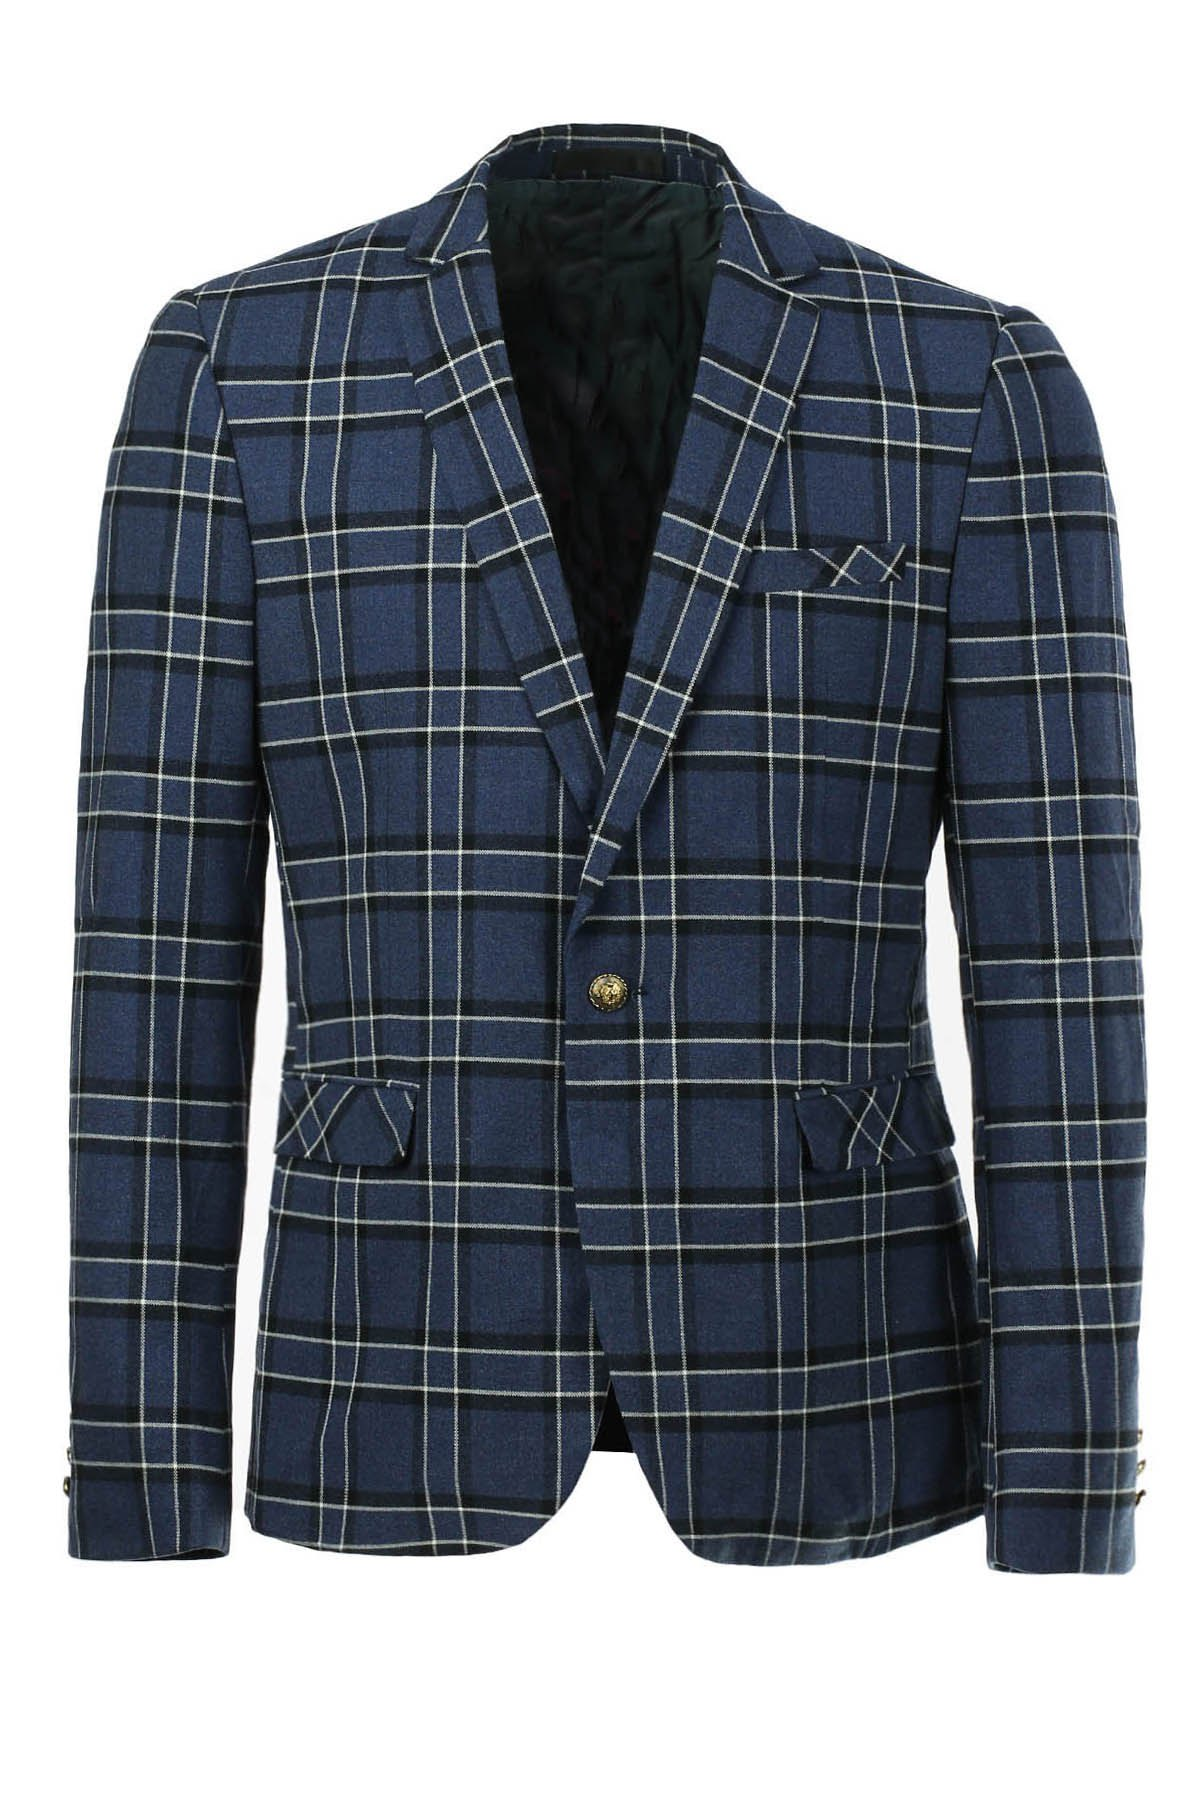 Slim Fit Single Button Long Sleeves Checked Blazer For Men - BLUE L